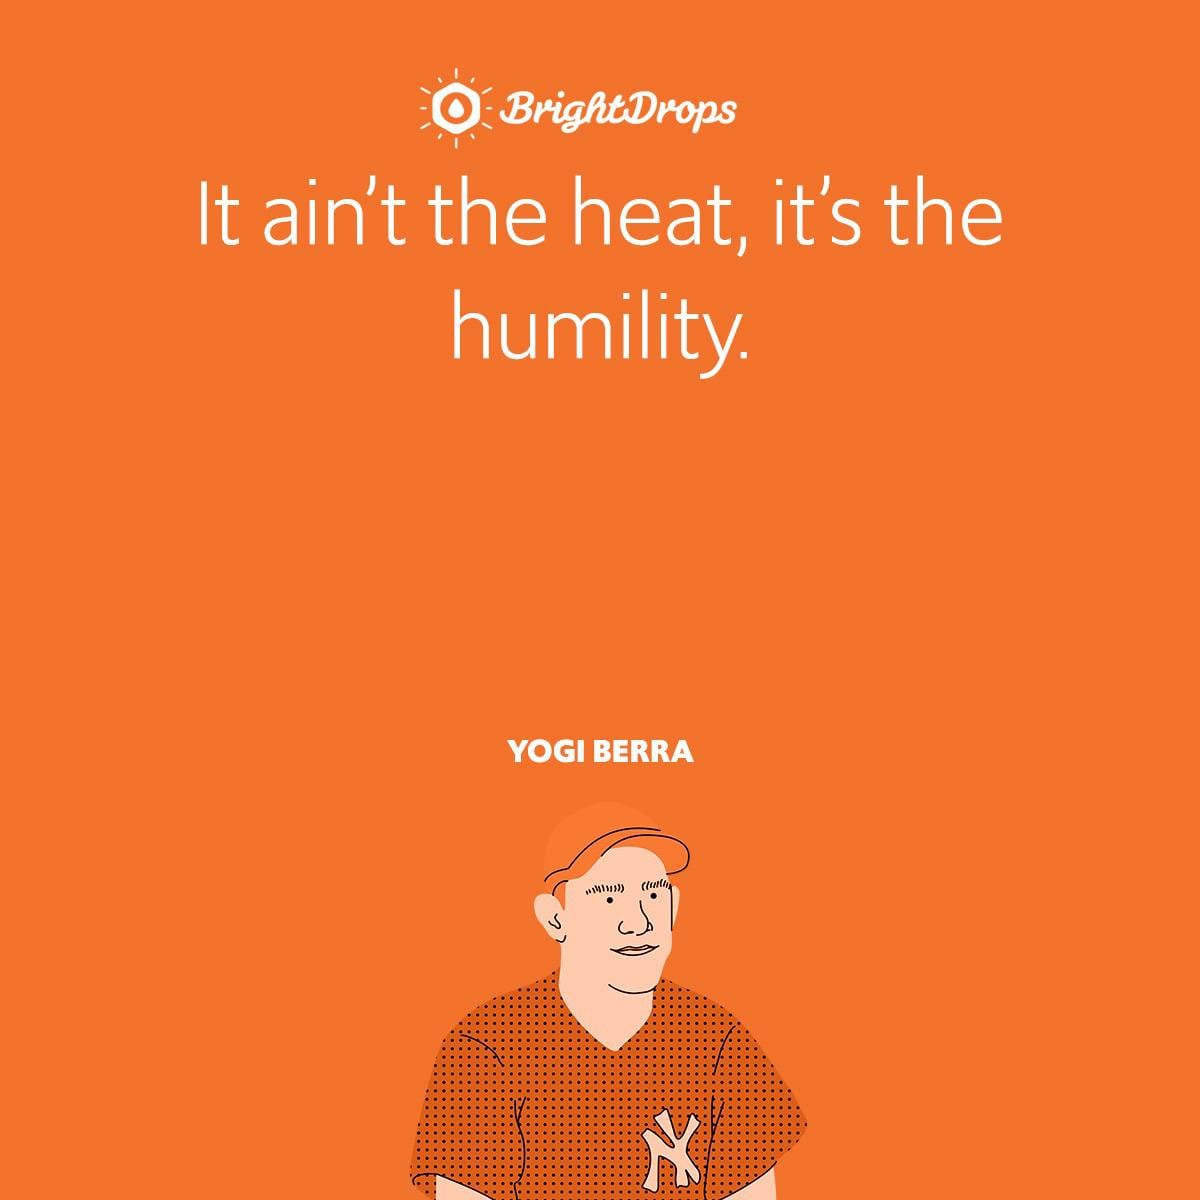 It ain't the heat, it's the humility.